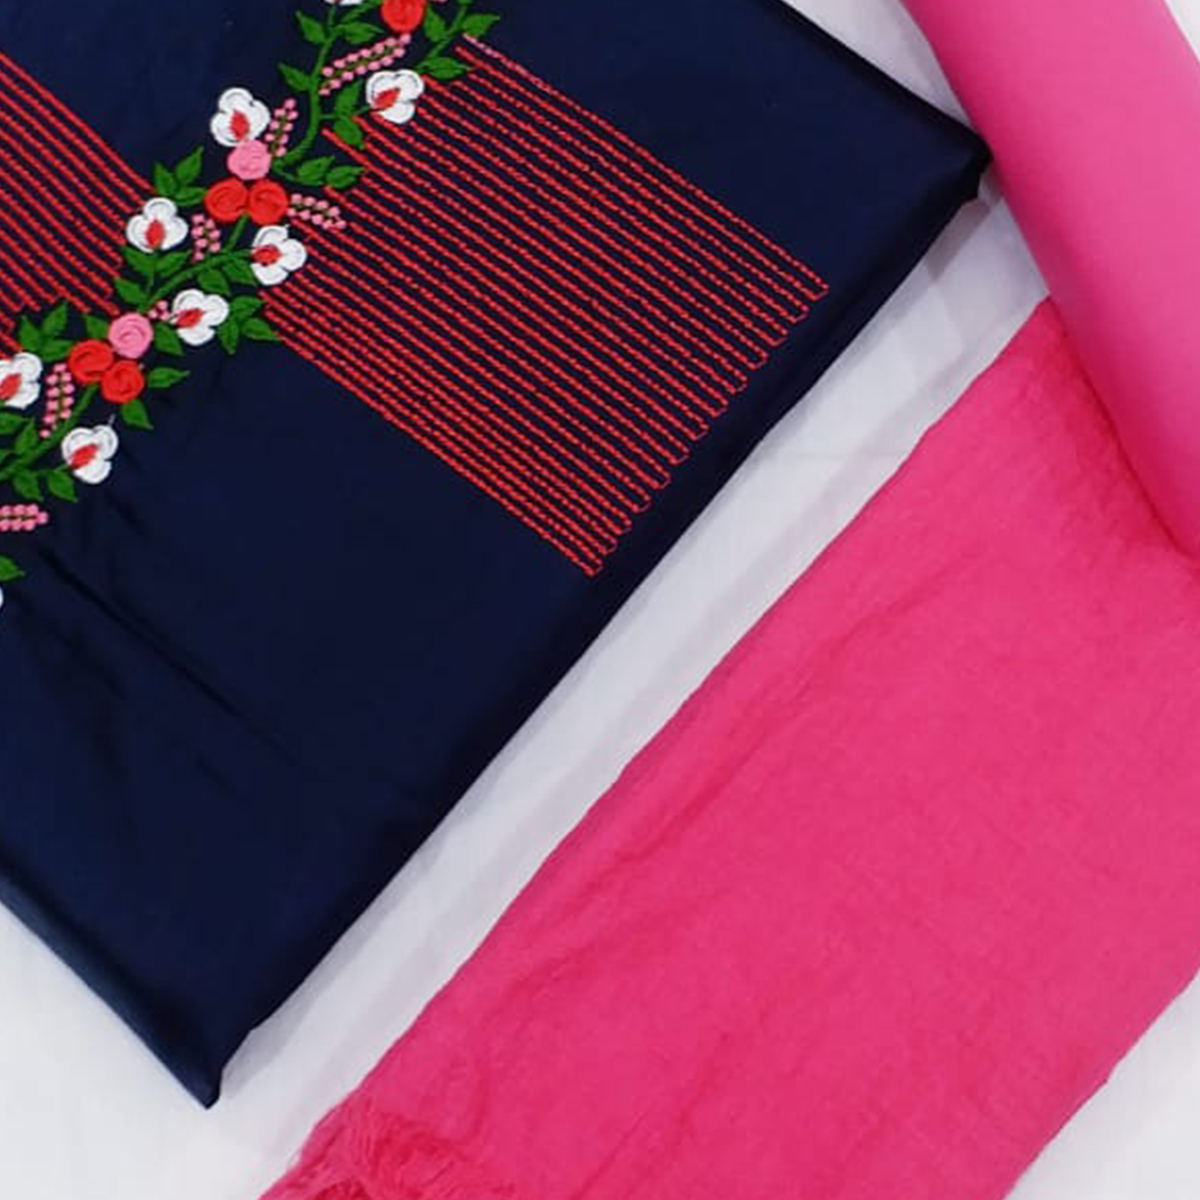 Ideal Navy Blue-Pink Colored Partywear Floral Embroidered Cotton Dress Material